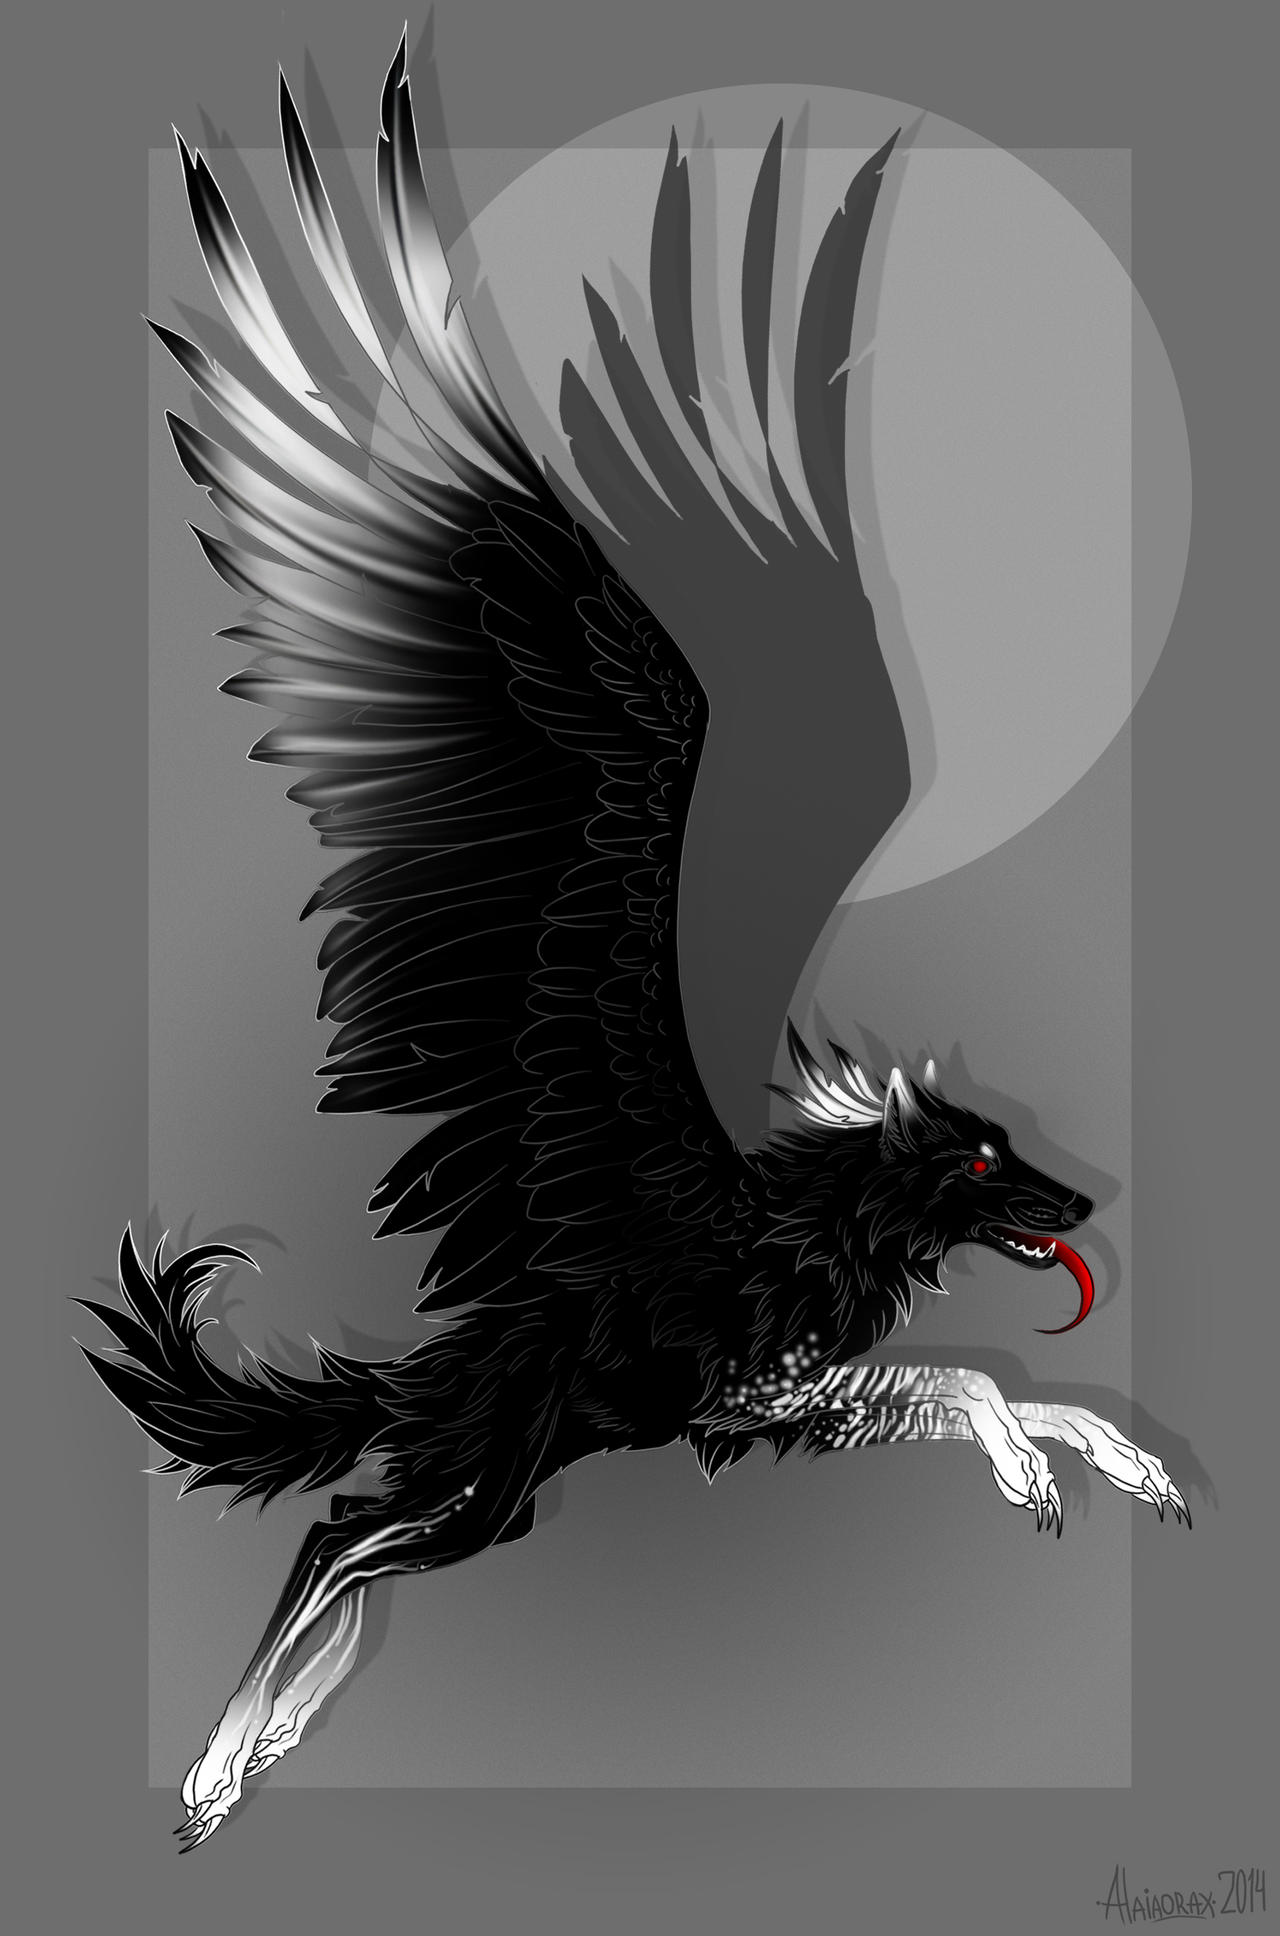 Winged wolf by Alaiaorax on DeviantArt